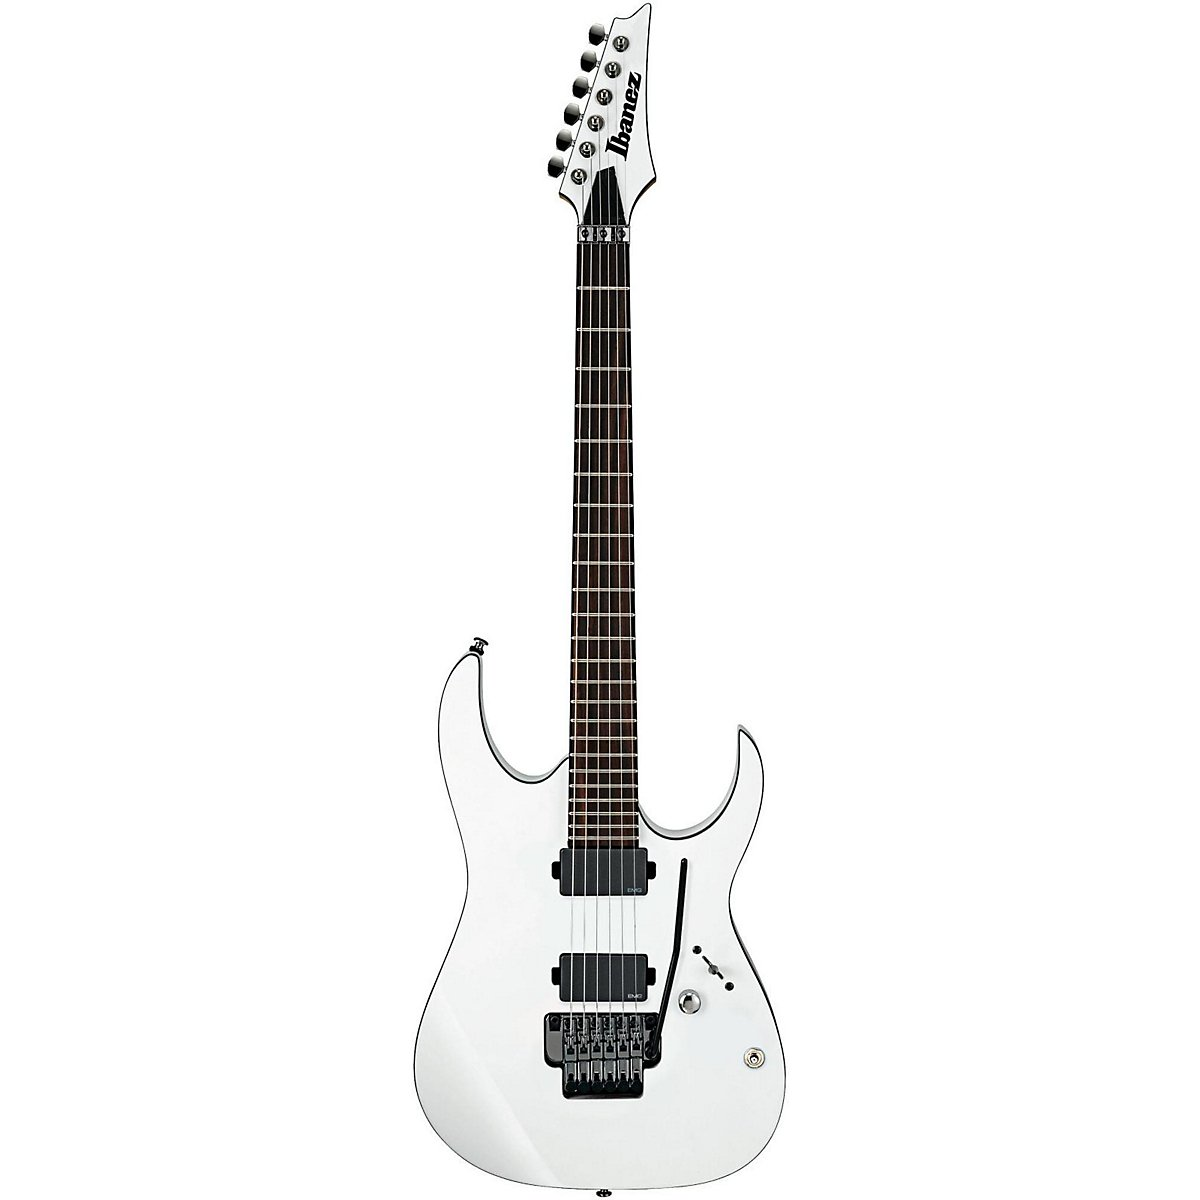 Ibanez Iron Label rgir20e Guitarra Eléctrica con EMG Pickups ...